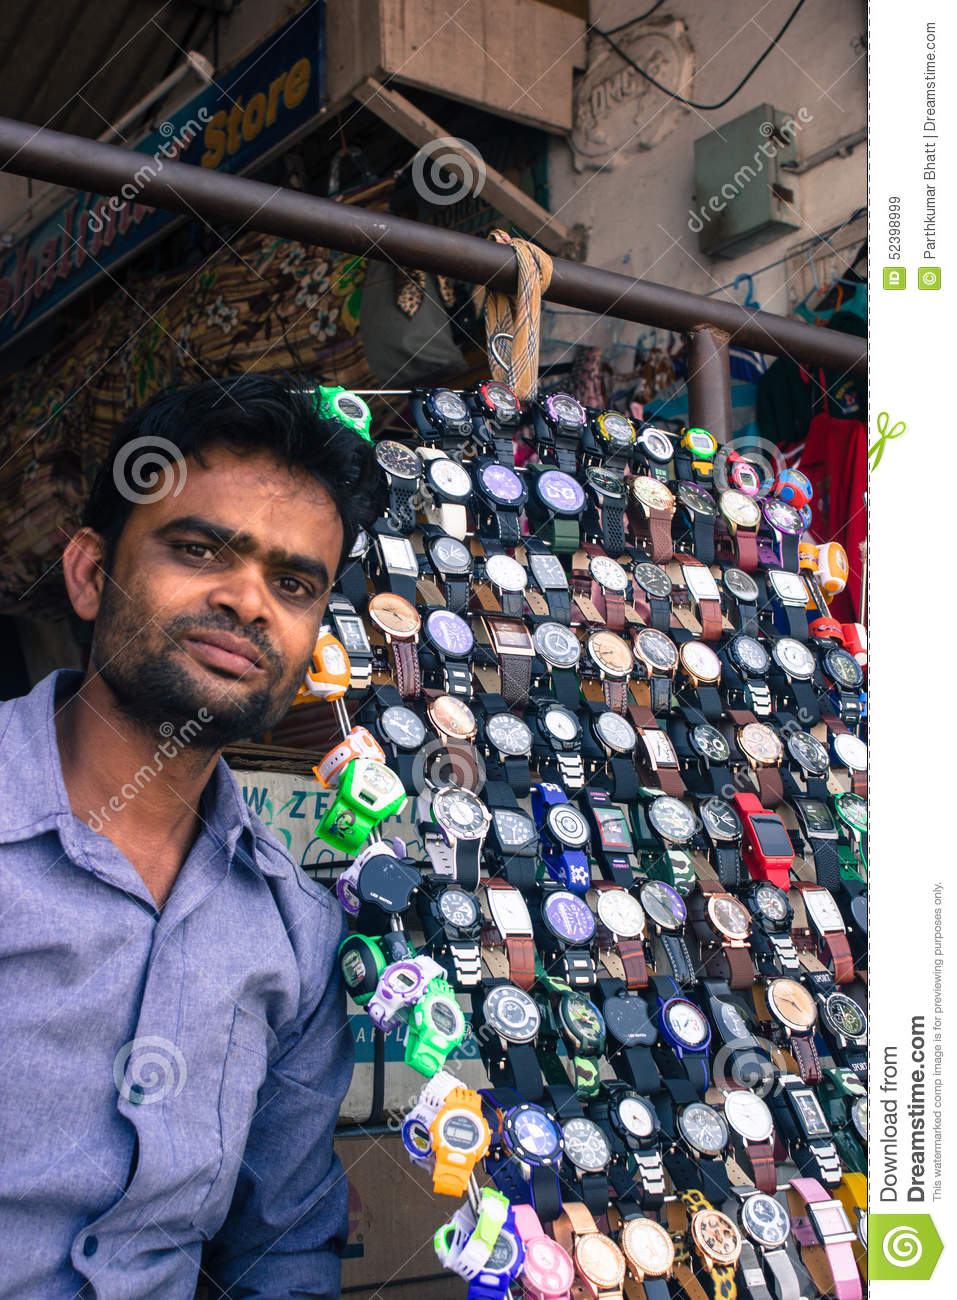 Image result for STREET VENDOR SELLING CHEAP WATCHES